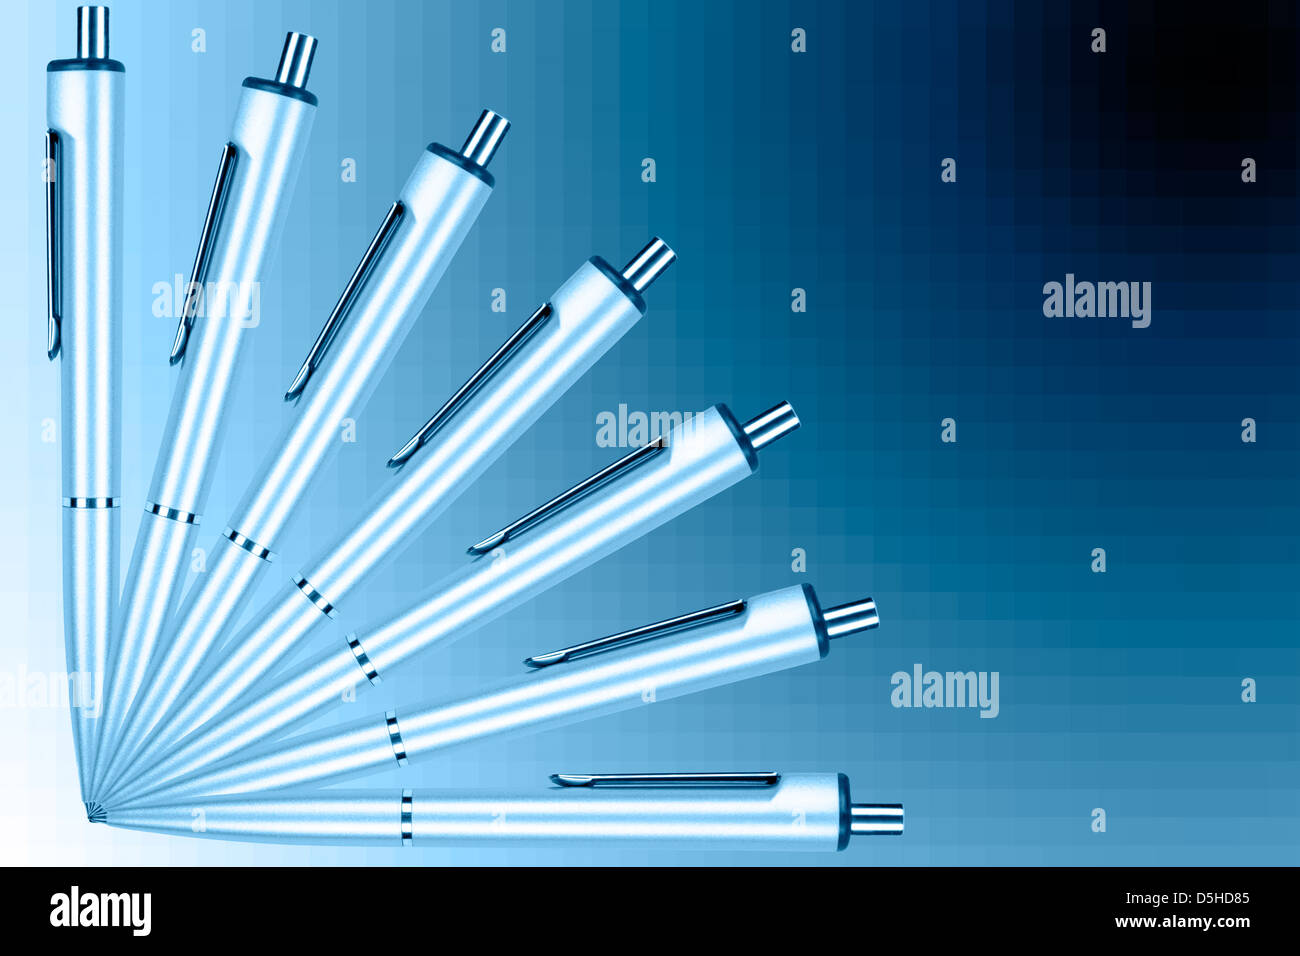 Fan of pens on a blue graduated background - Stock Image